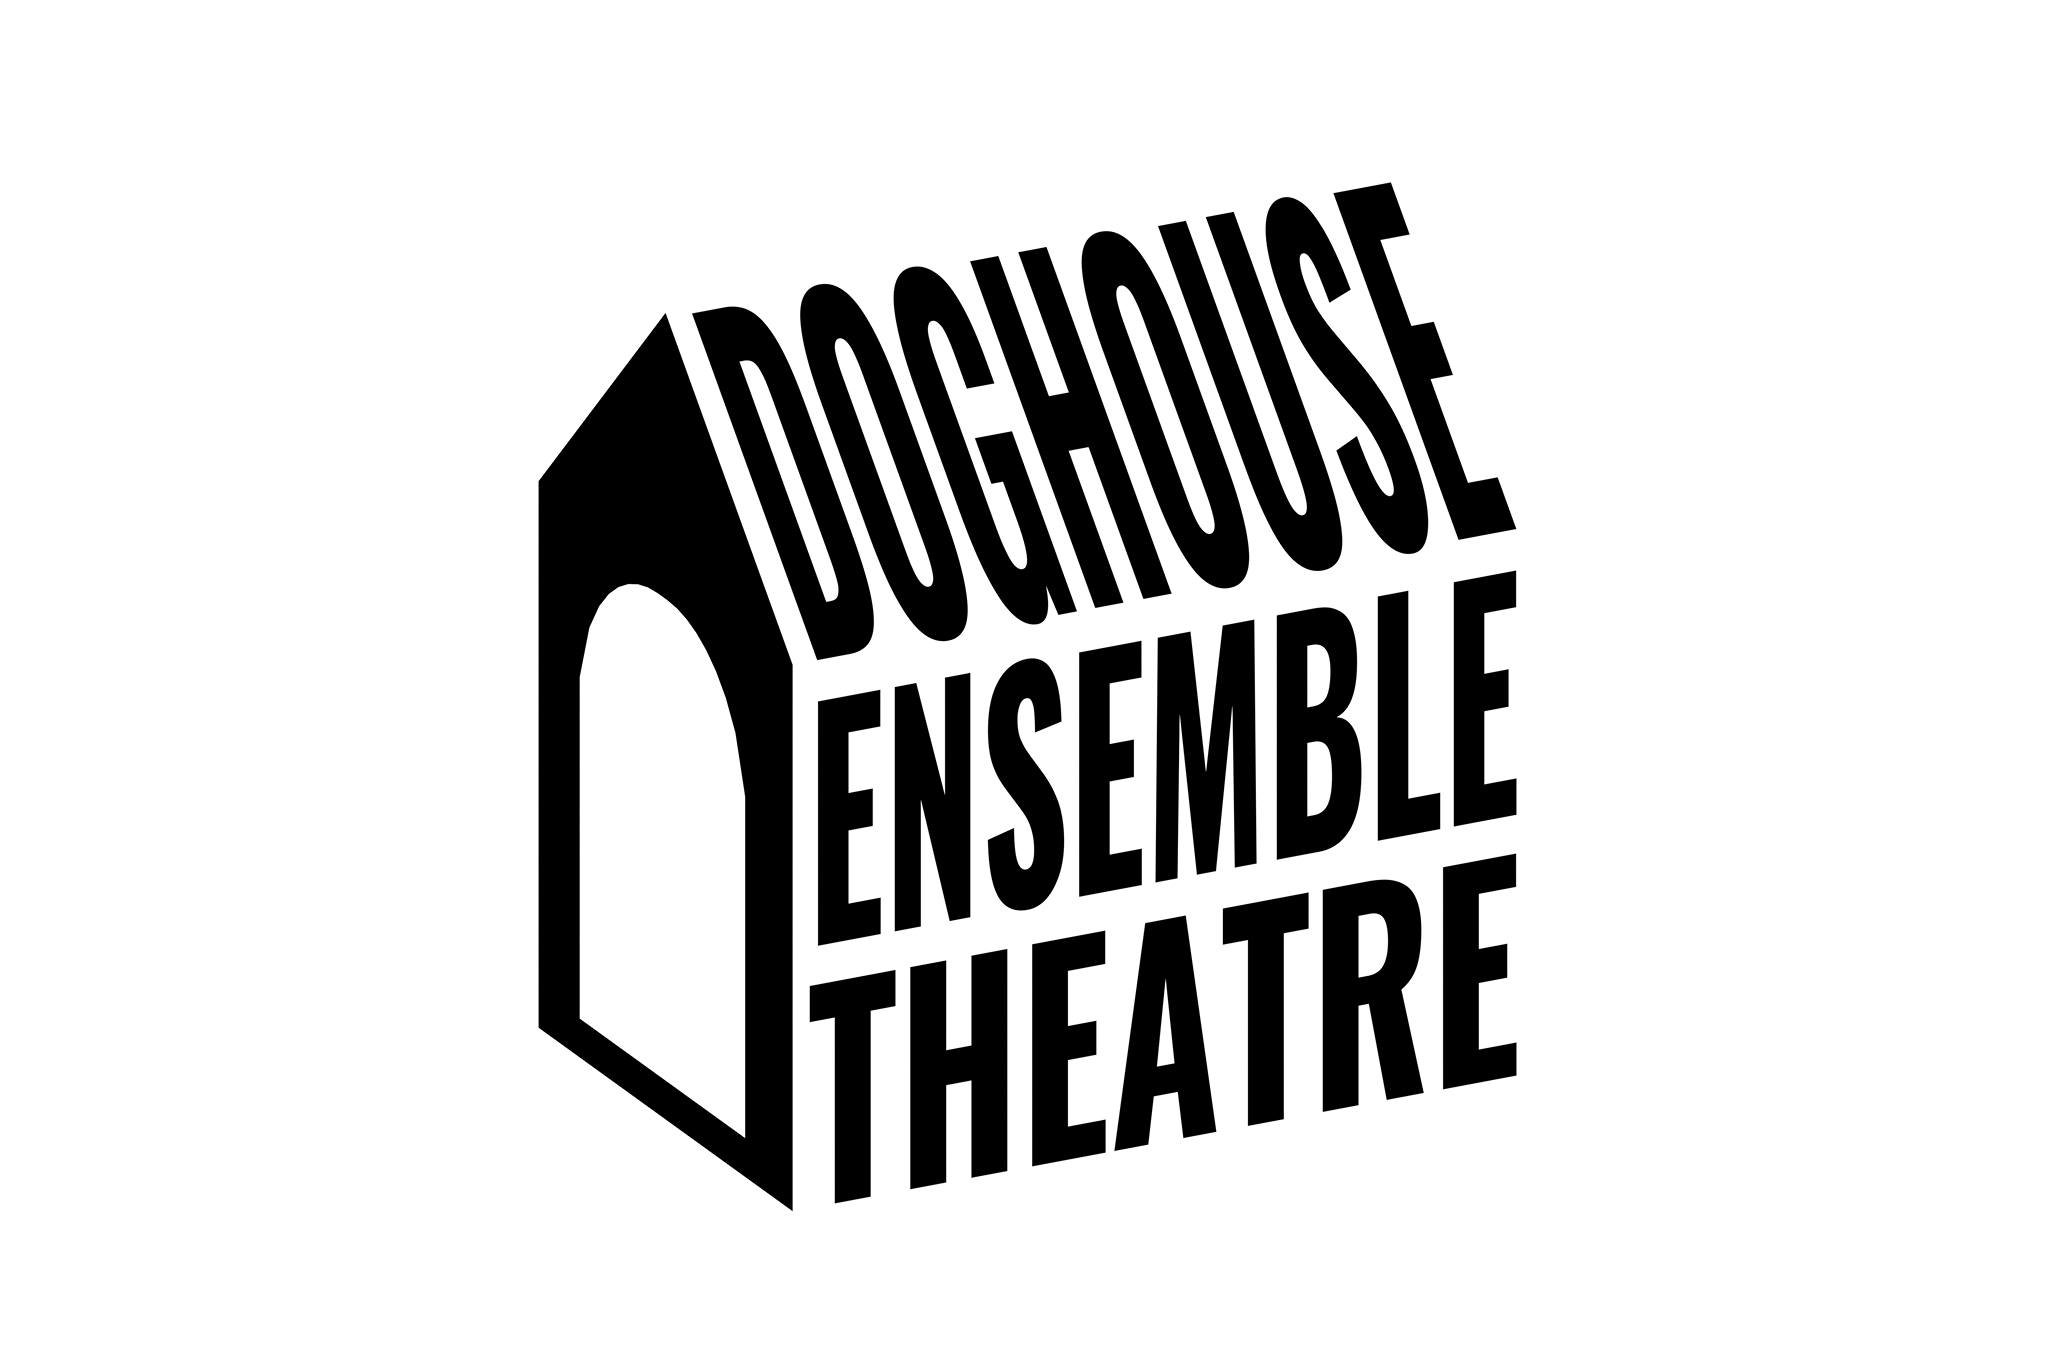 Doghouse Ensemble Theatre is an ensemble theatre company created by graduates of Interlochen Arts Academy.The mission of Doghouse Ensemble Theatre is to offer artists opportunities to create innovative, exciting, and dynamic work, embracing the fact that they are spread all across the world. The Doghouse Ensemble is dedicated to pushing creative boundaries and allowing for communities around the globe to access our work without being financially burdened.